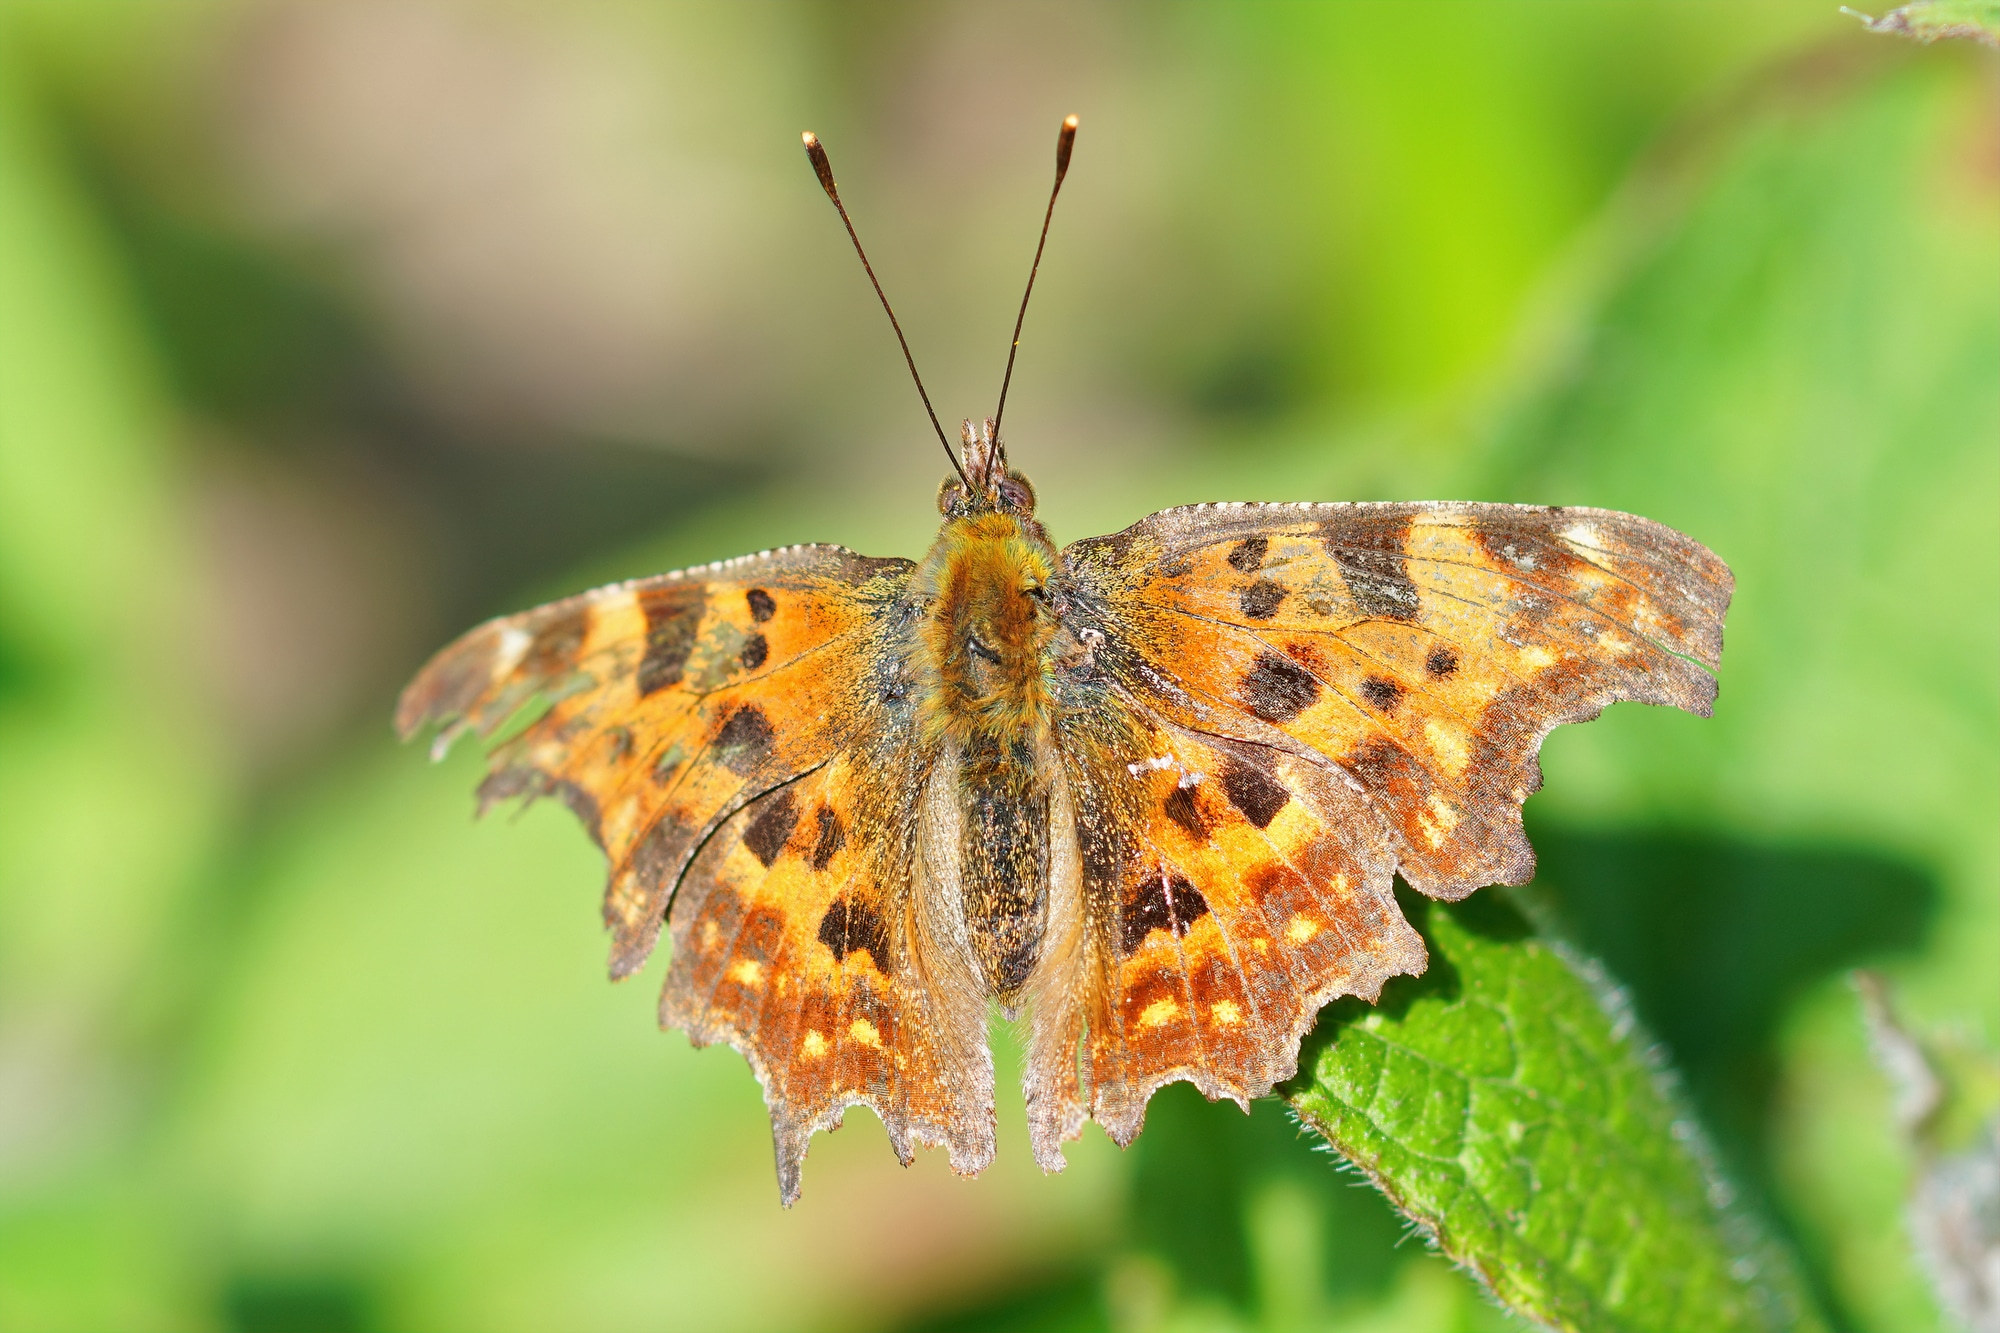 Wing upperside of the comma